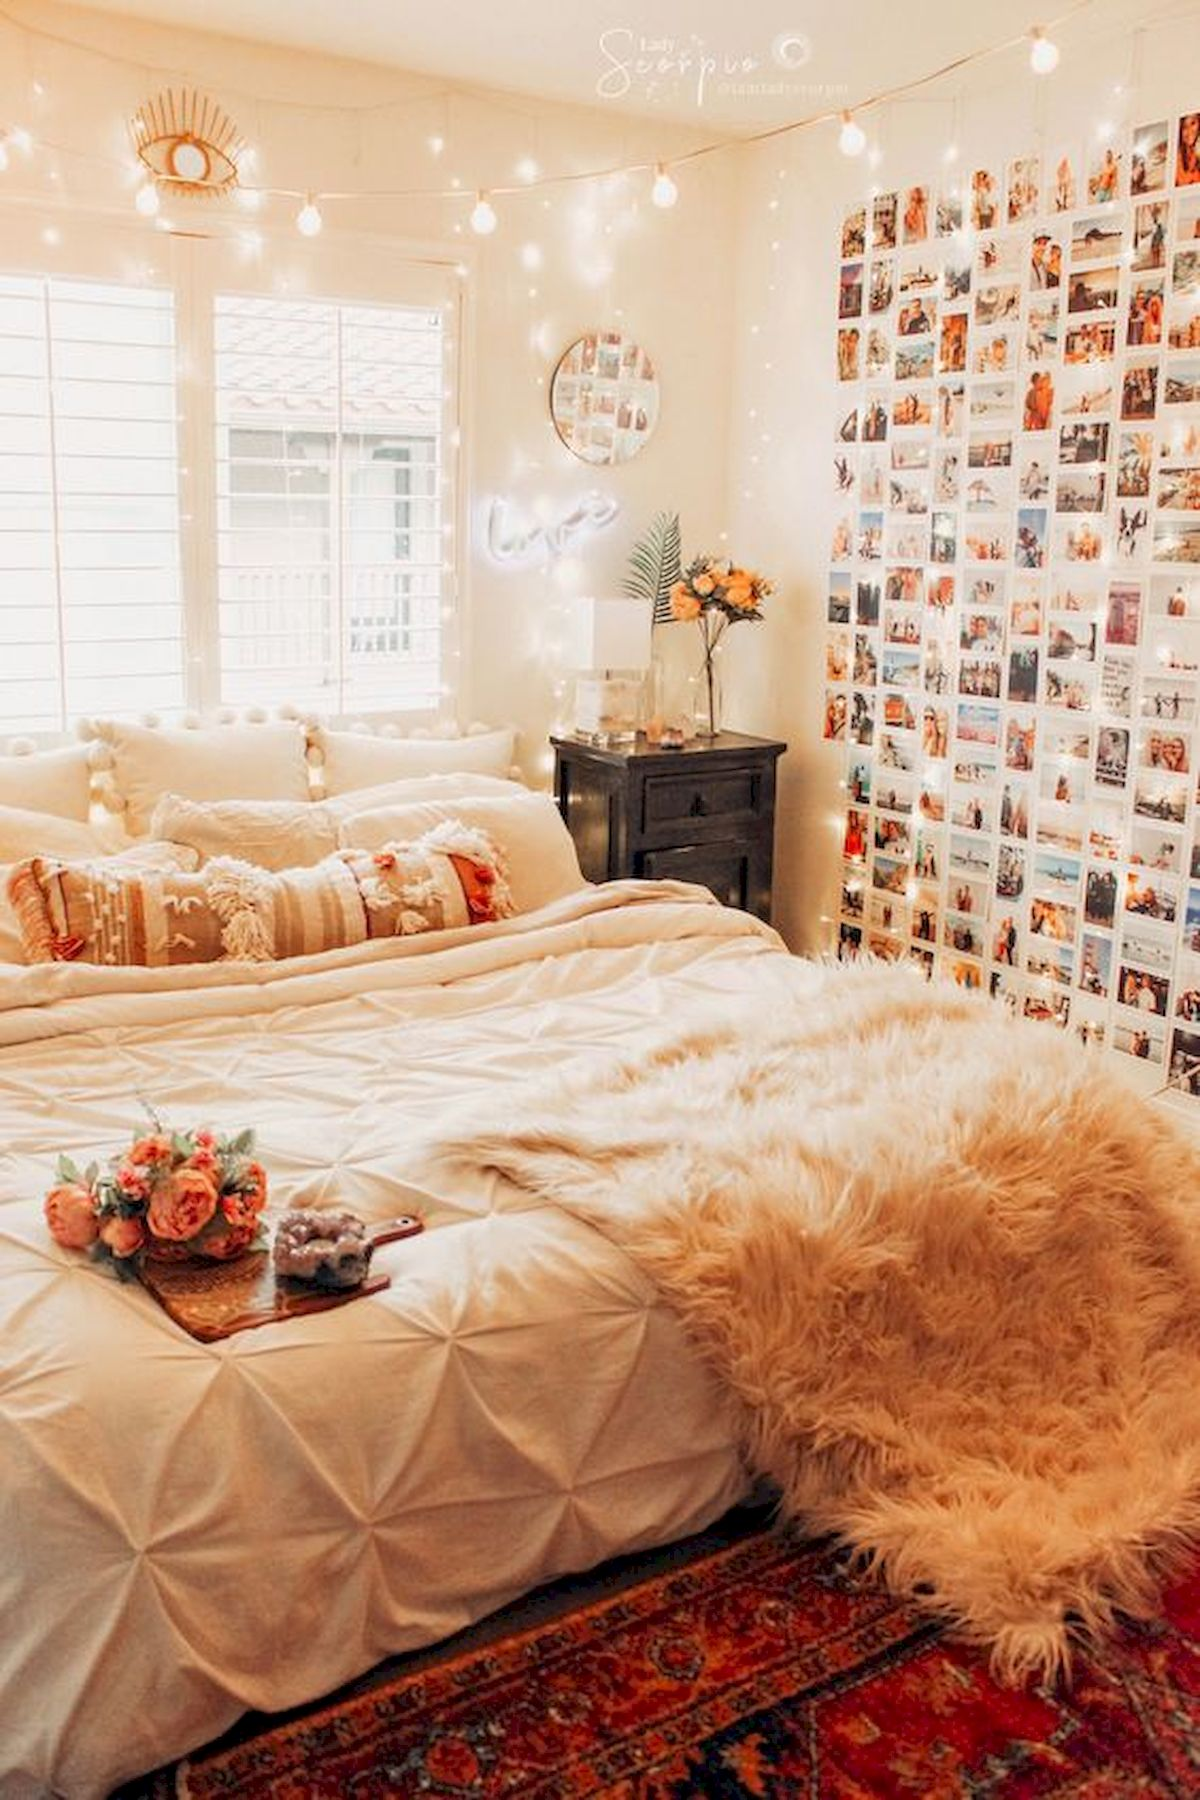 82 Cool Bedroom Ideas For Creative Couples 29 Artmyideas